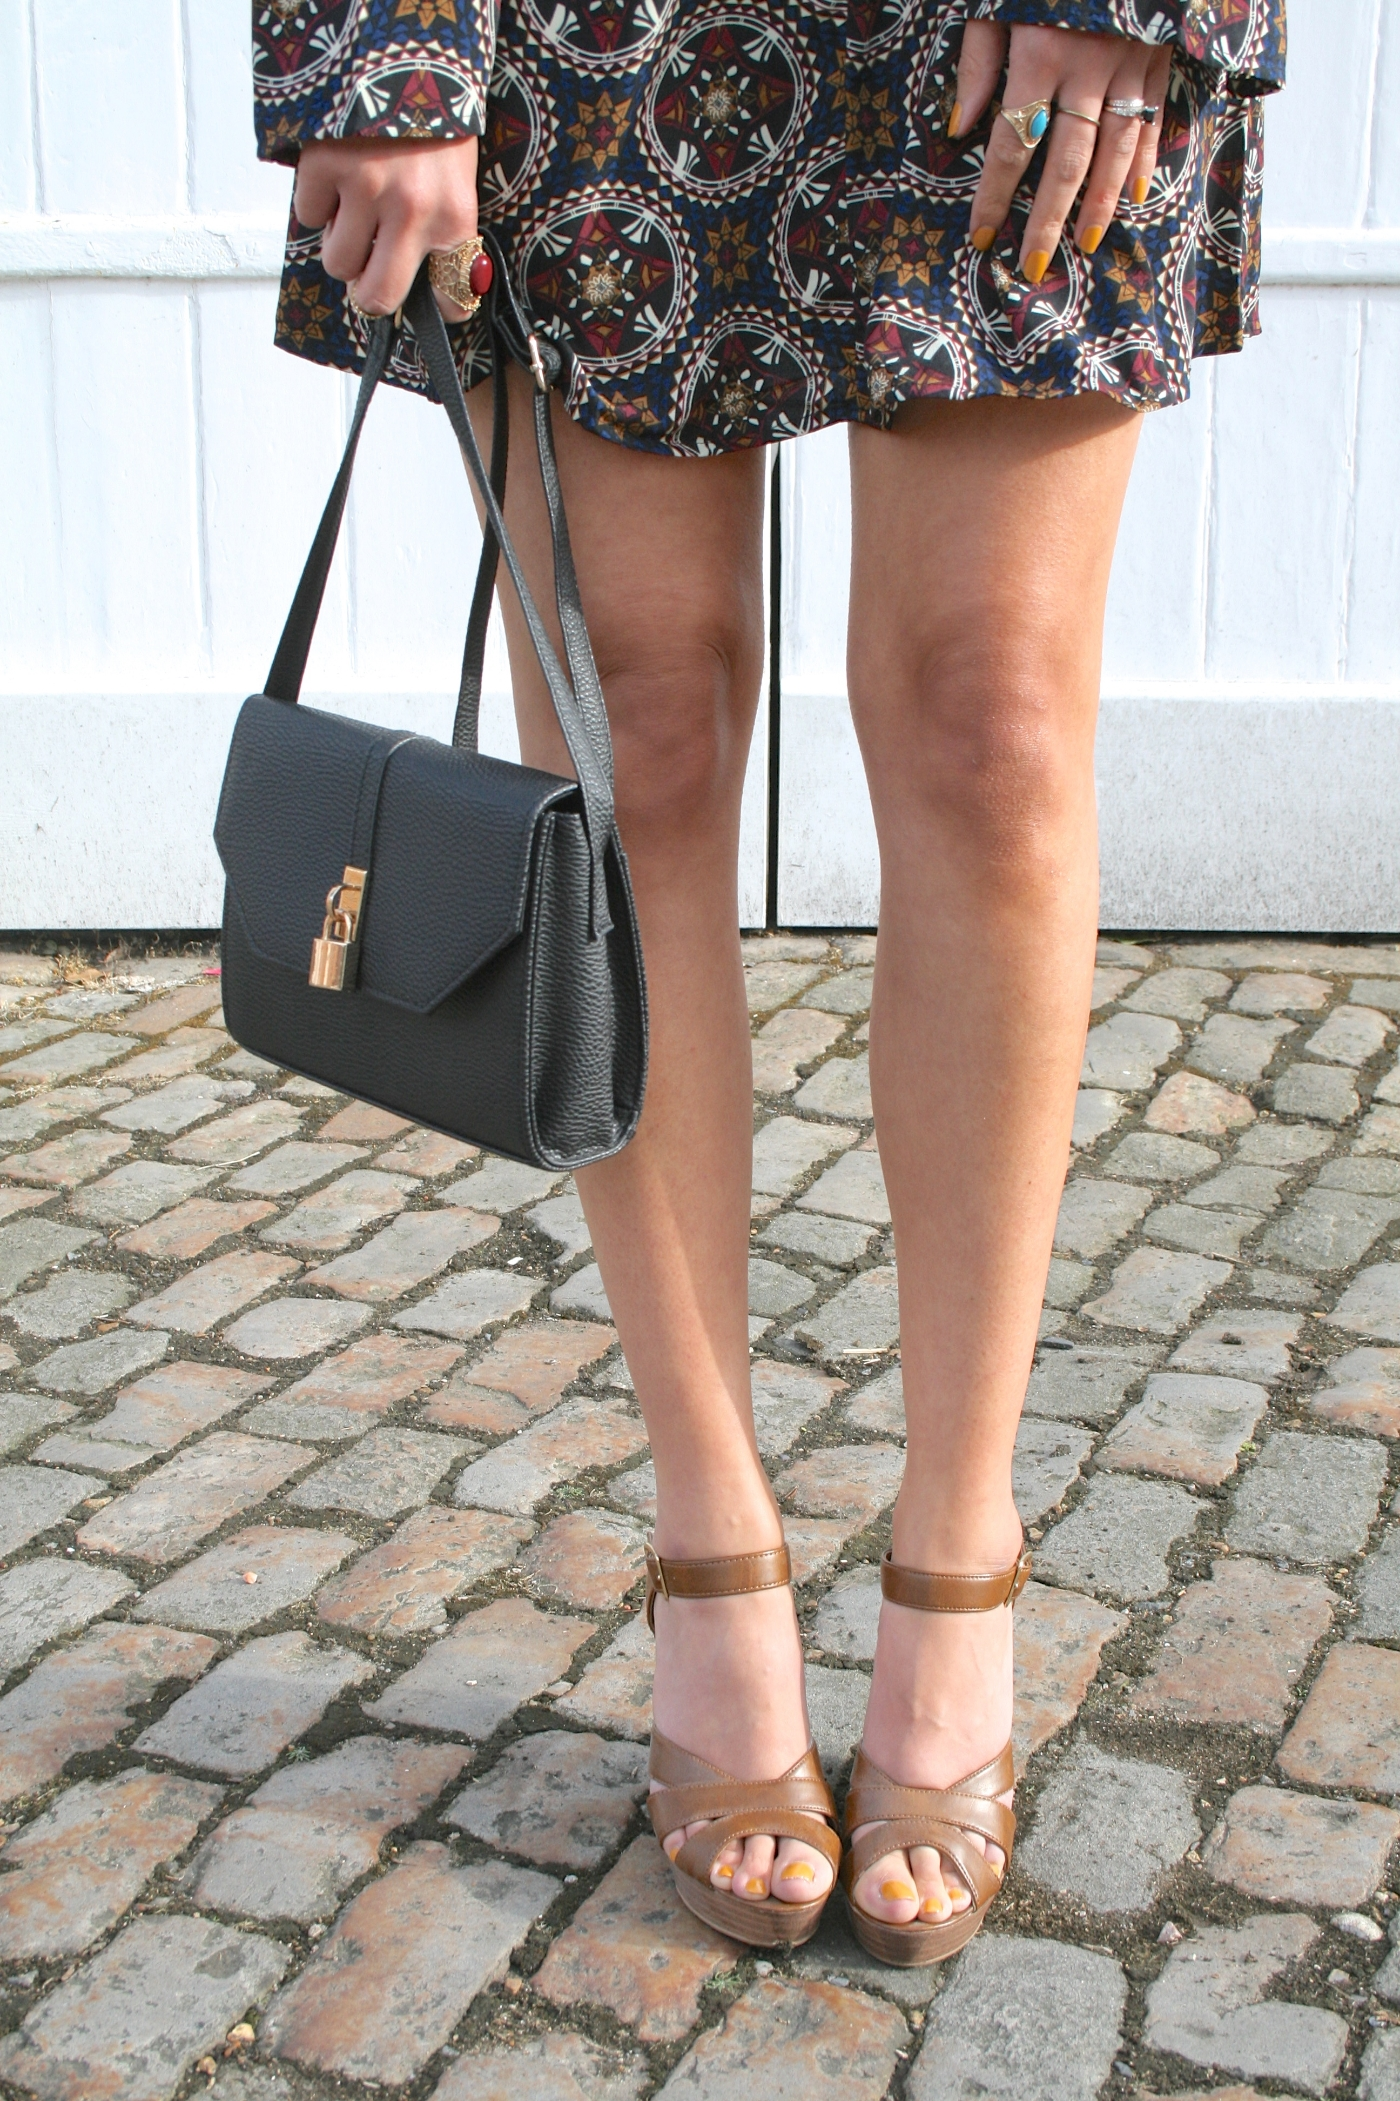 legs and tan wedges